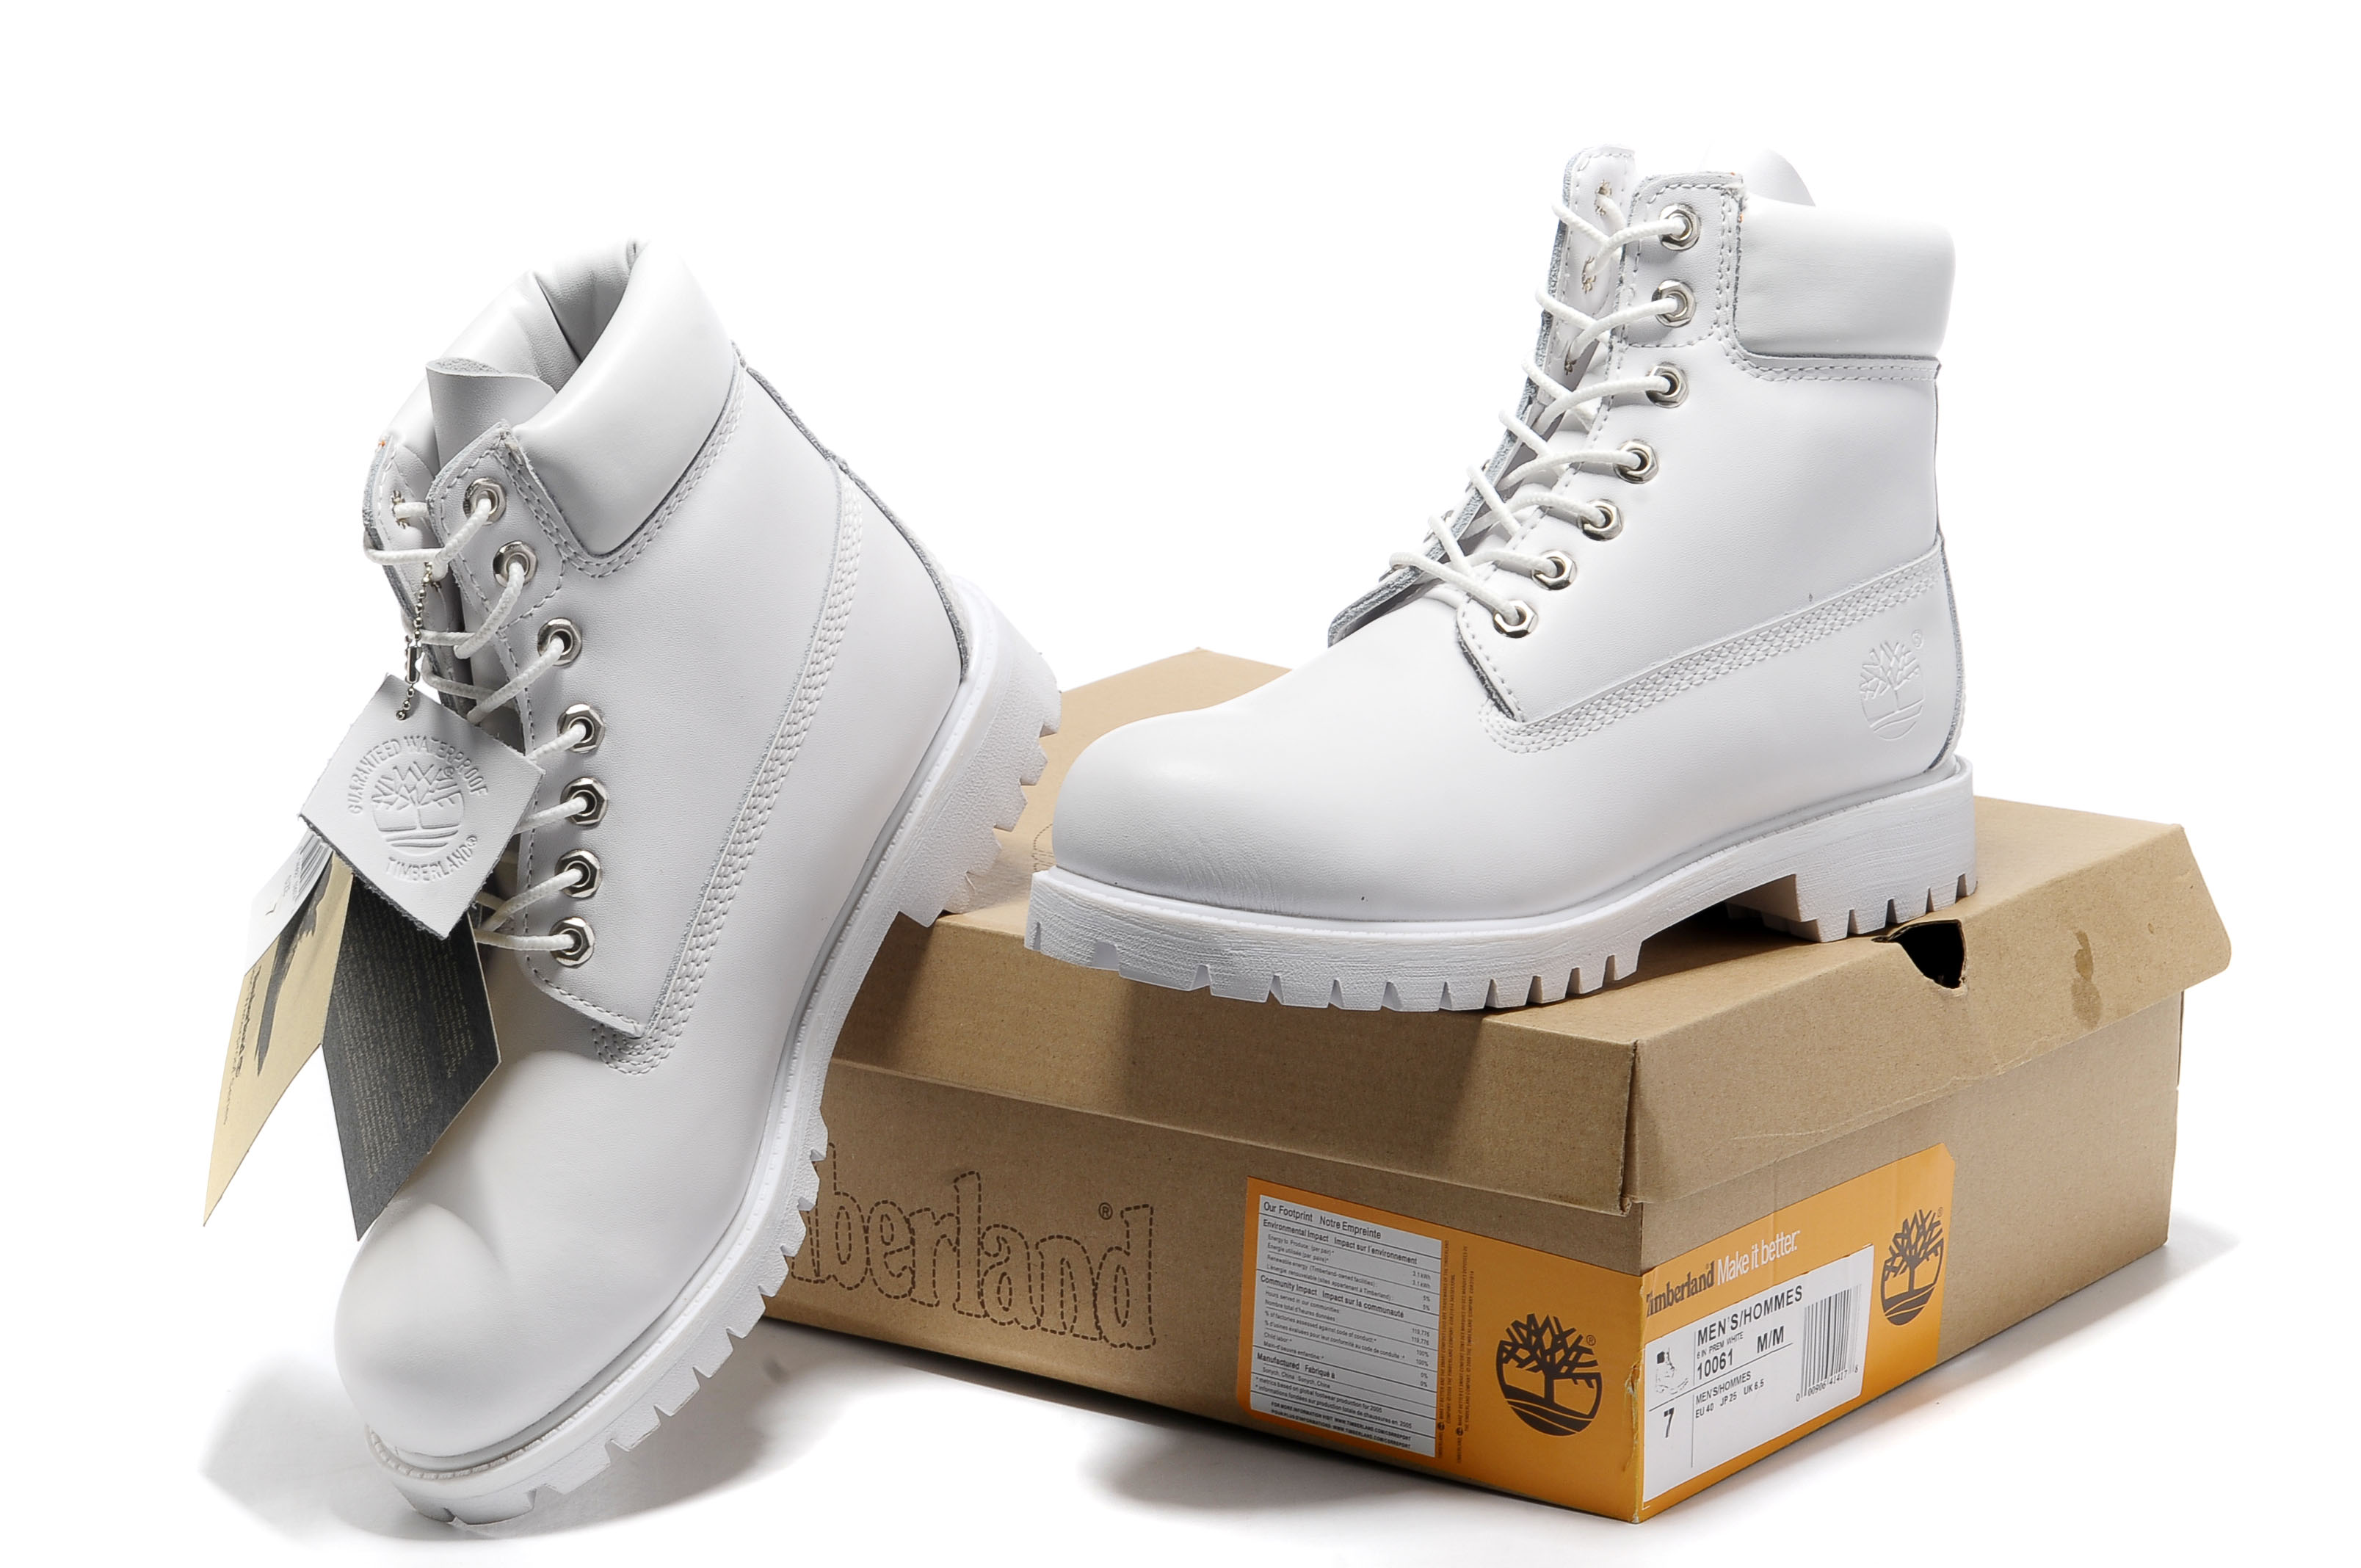 Timberland Mens Boots & Shoes at Macy's - Mens Footwear - Macy's